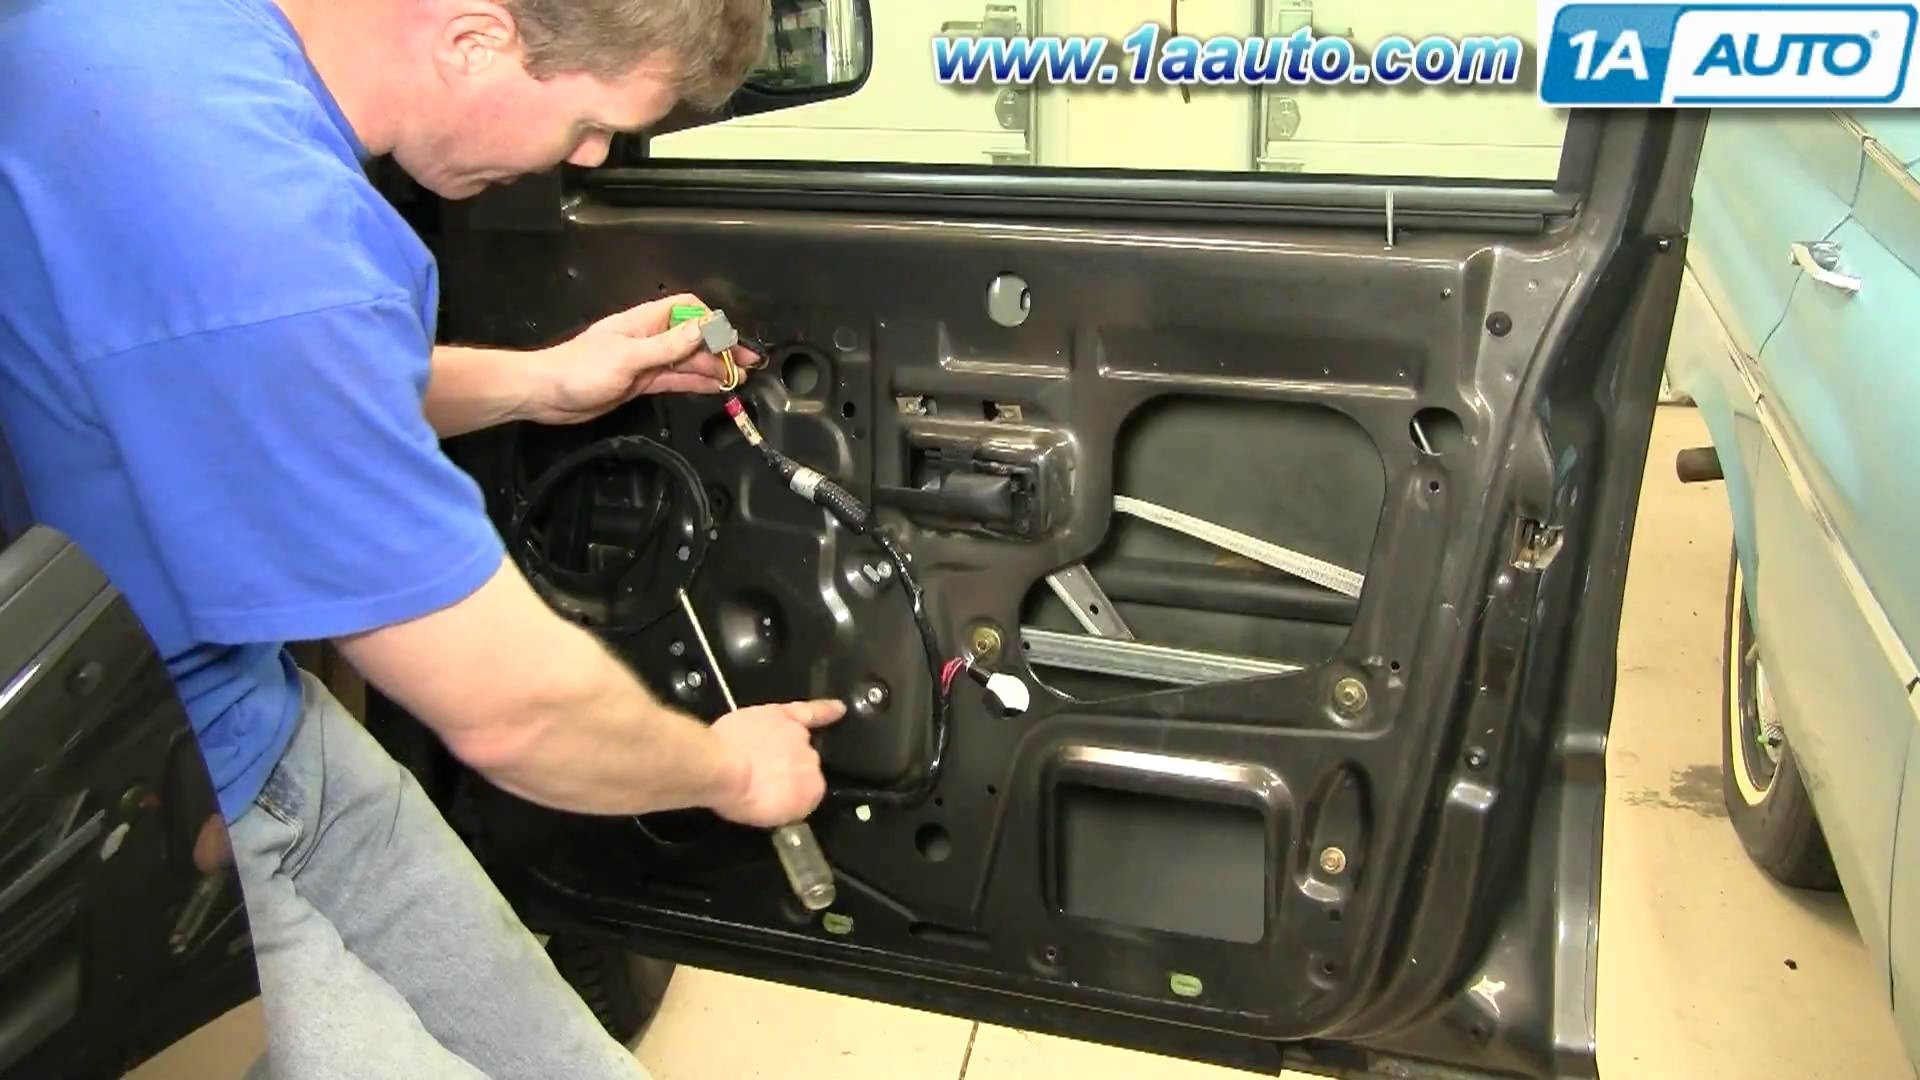 2003 Ford Explorer Sport Trac Engine Diagram My Wiring 2007 How To Install Replace Window Regulator